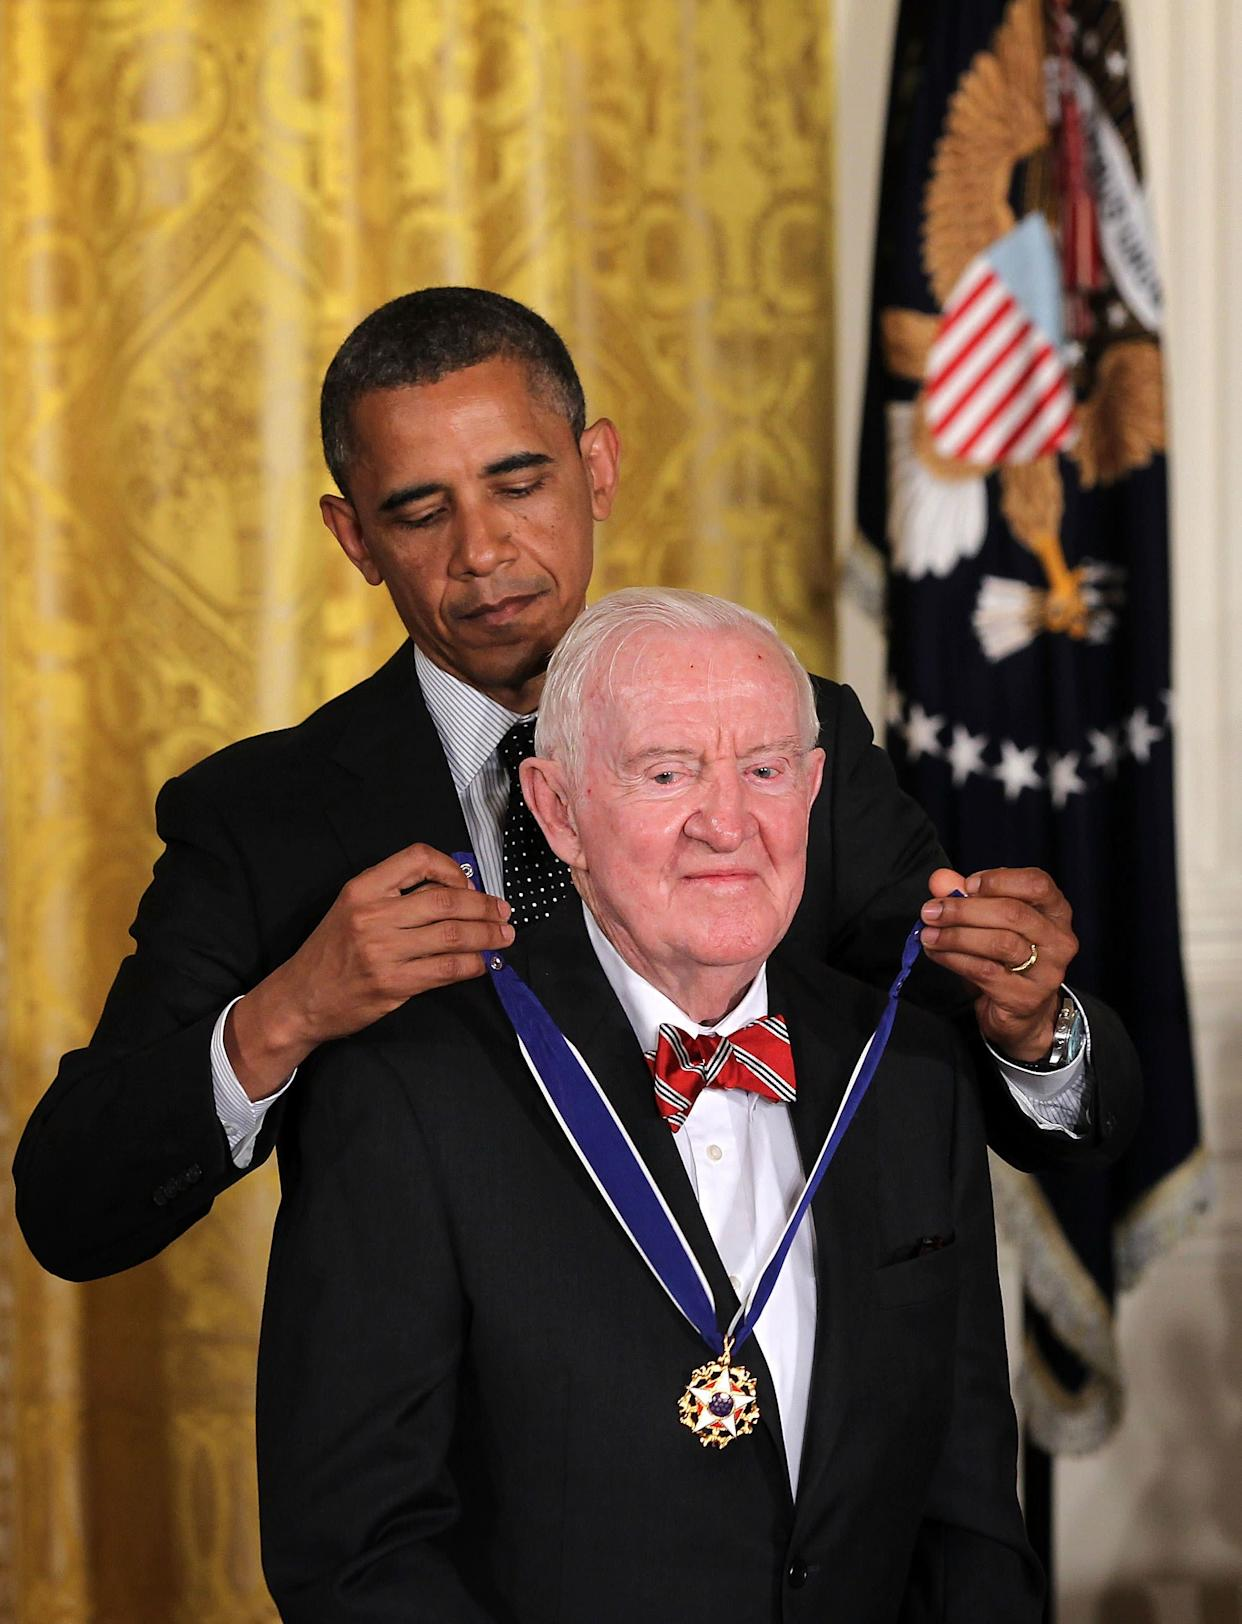 Justice John Paul Stevens is presented with the Presidential Medal of Freedom by President Barack Obama during an East Room event on May 29, 2012. The Medal of Freedom, the nation's highest civilian honor, isgiven to individuals who have made especially meritorious contributions to the security or national interests of the United States, to world peace, or to cultural or other significant public or private endeavors.